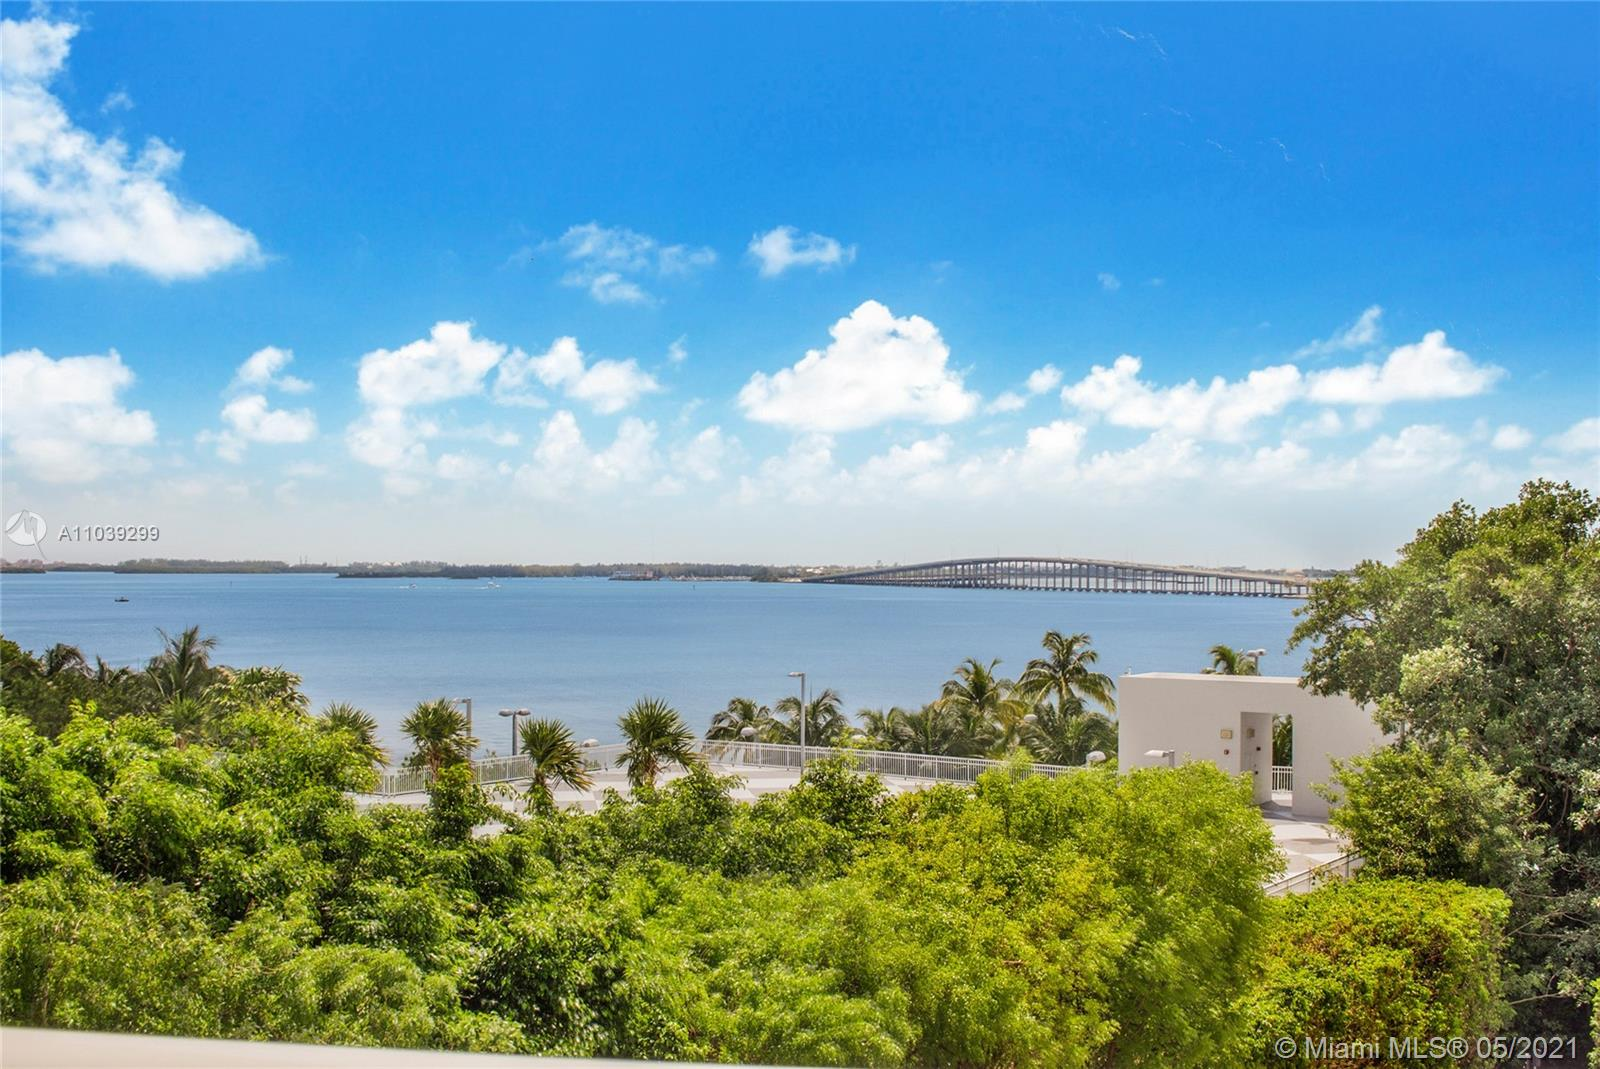 Soak in stunning bay views & five star resort style living at the Bristol Tower. Timeless elegance in this meticulously kept 2 bedroom 2 bathroom luxury masterpiece. Fully remodeled bathrooms, imported Italian cabinetry, select marble, soaking tub, custom doors/cabinetry by Mia Cucina throughout. Several updates made in this property giving a modern feel to a classic building. Enormous terraces for both sunrise and sunset views over Biscayne bay and Miami. Property comes with storage unit. AC Recently replaced & upgraded with UV Light system. Tennis Court, BBQ area, coffee shop, pool, jacuzzi, gym/spa, kids playroom, community room, valet. Please checkout amazing matterport.